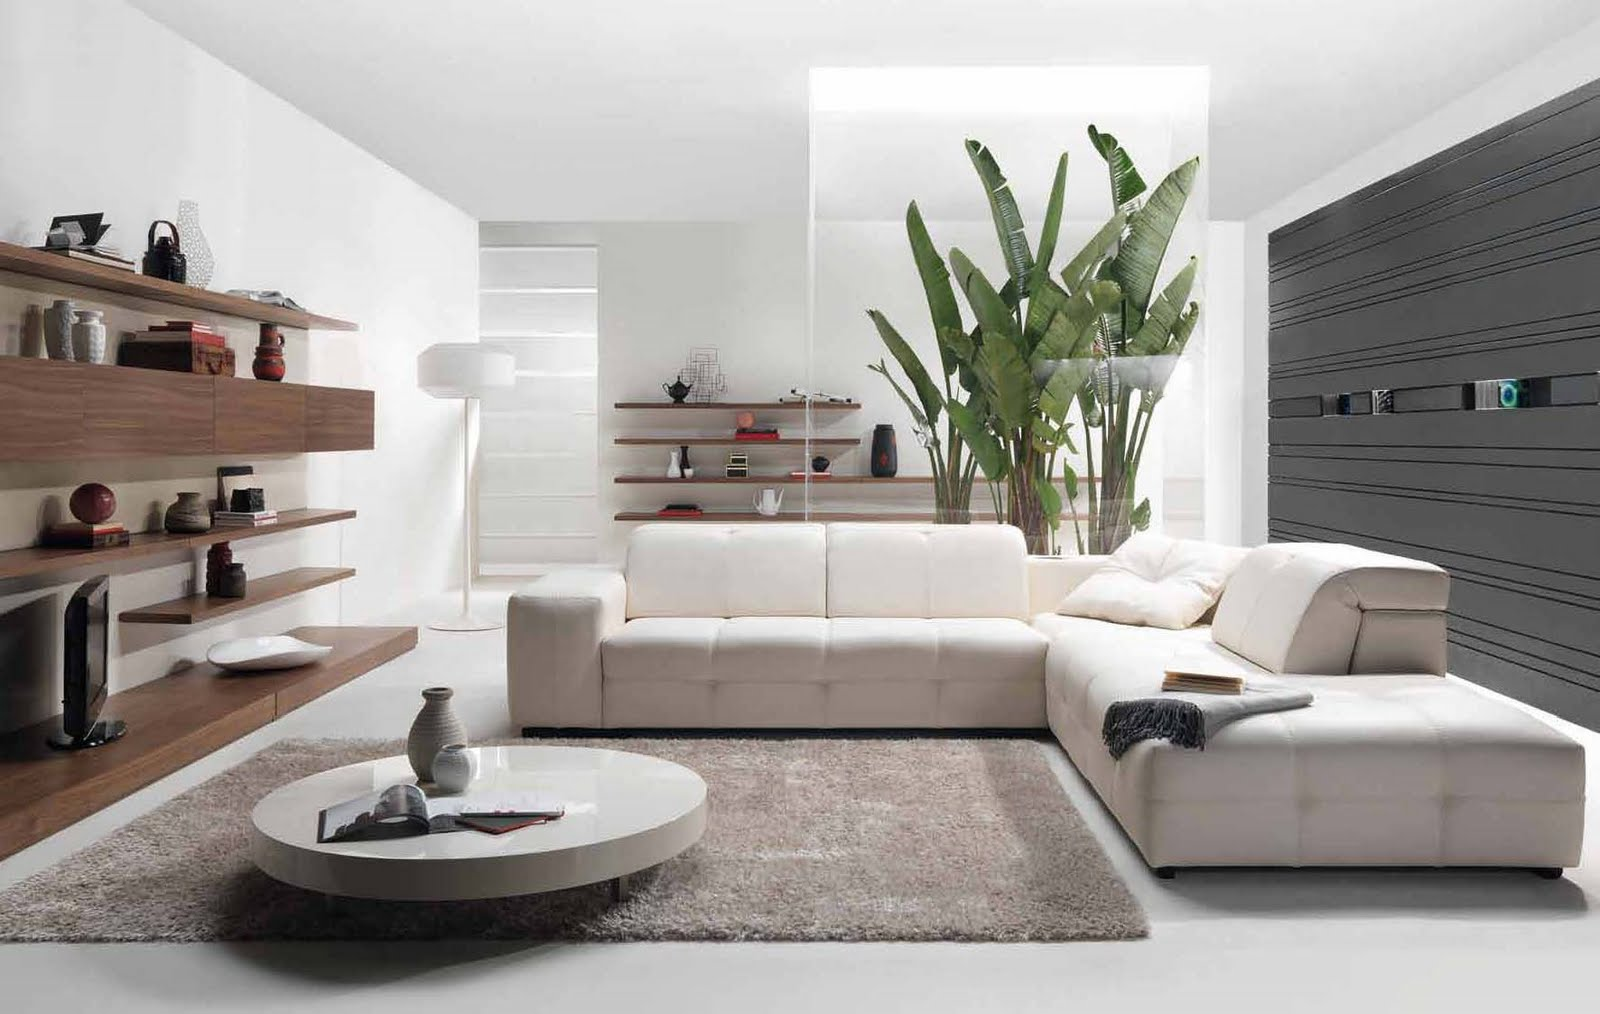 Home Interior Design Living Room Photos Of Future House Design Modern Living  Room Interior Design